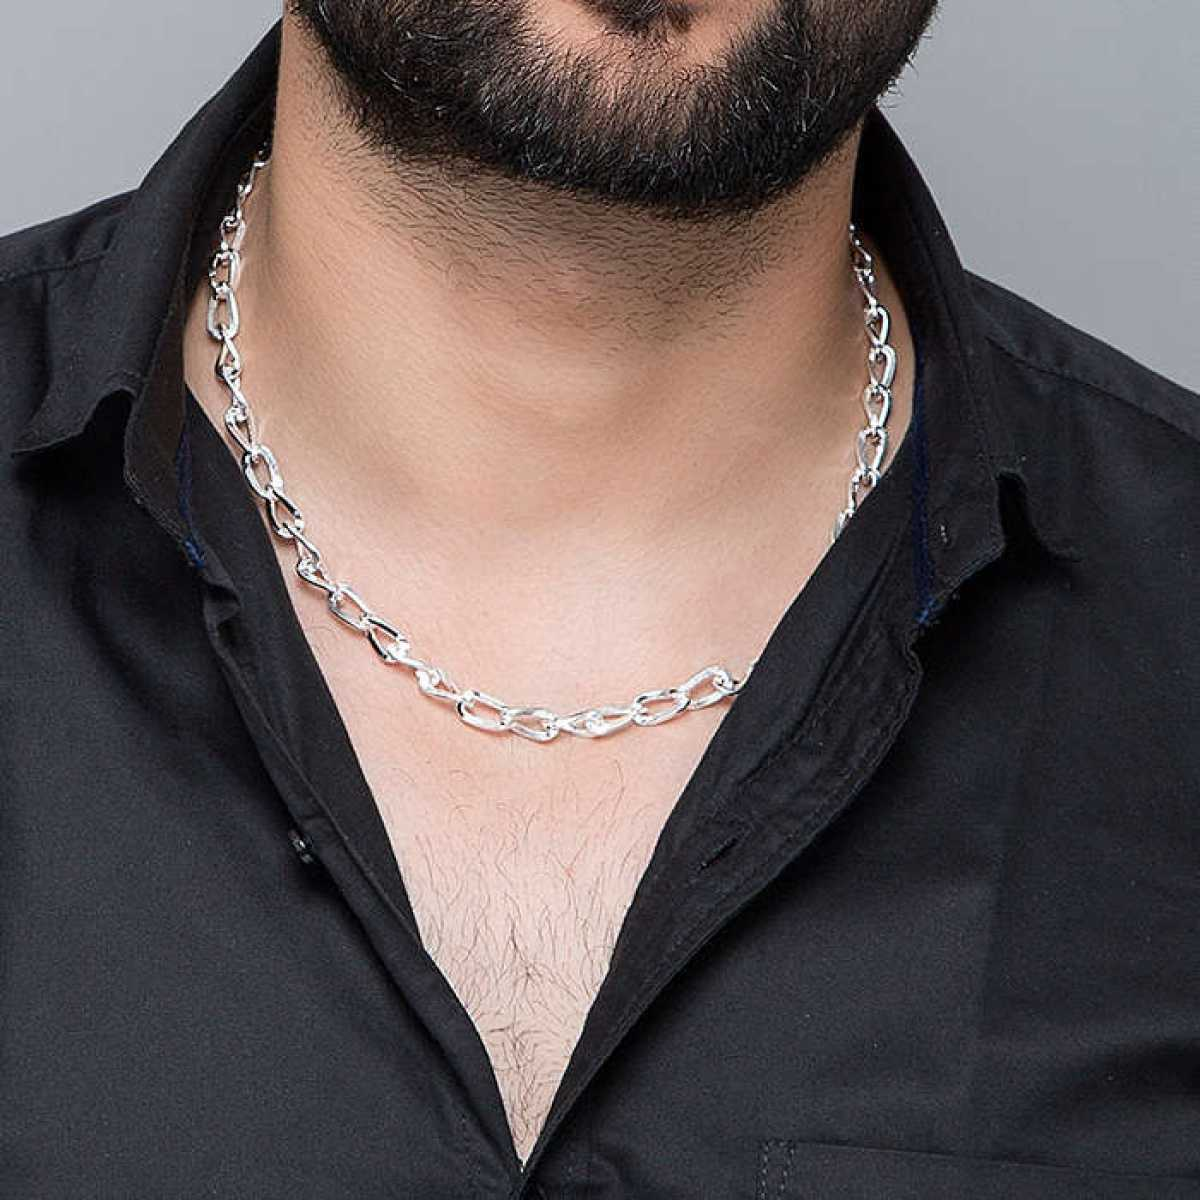 Classical Huge & Heavy Chain for Men